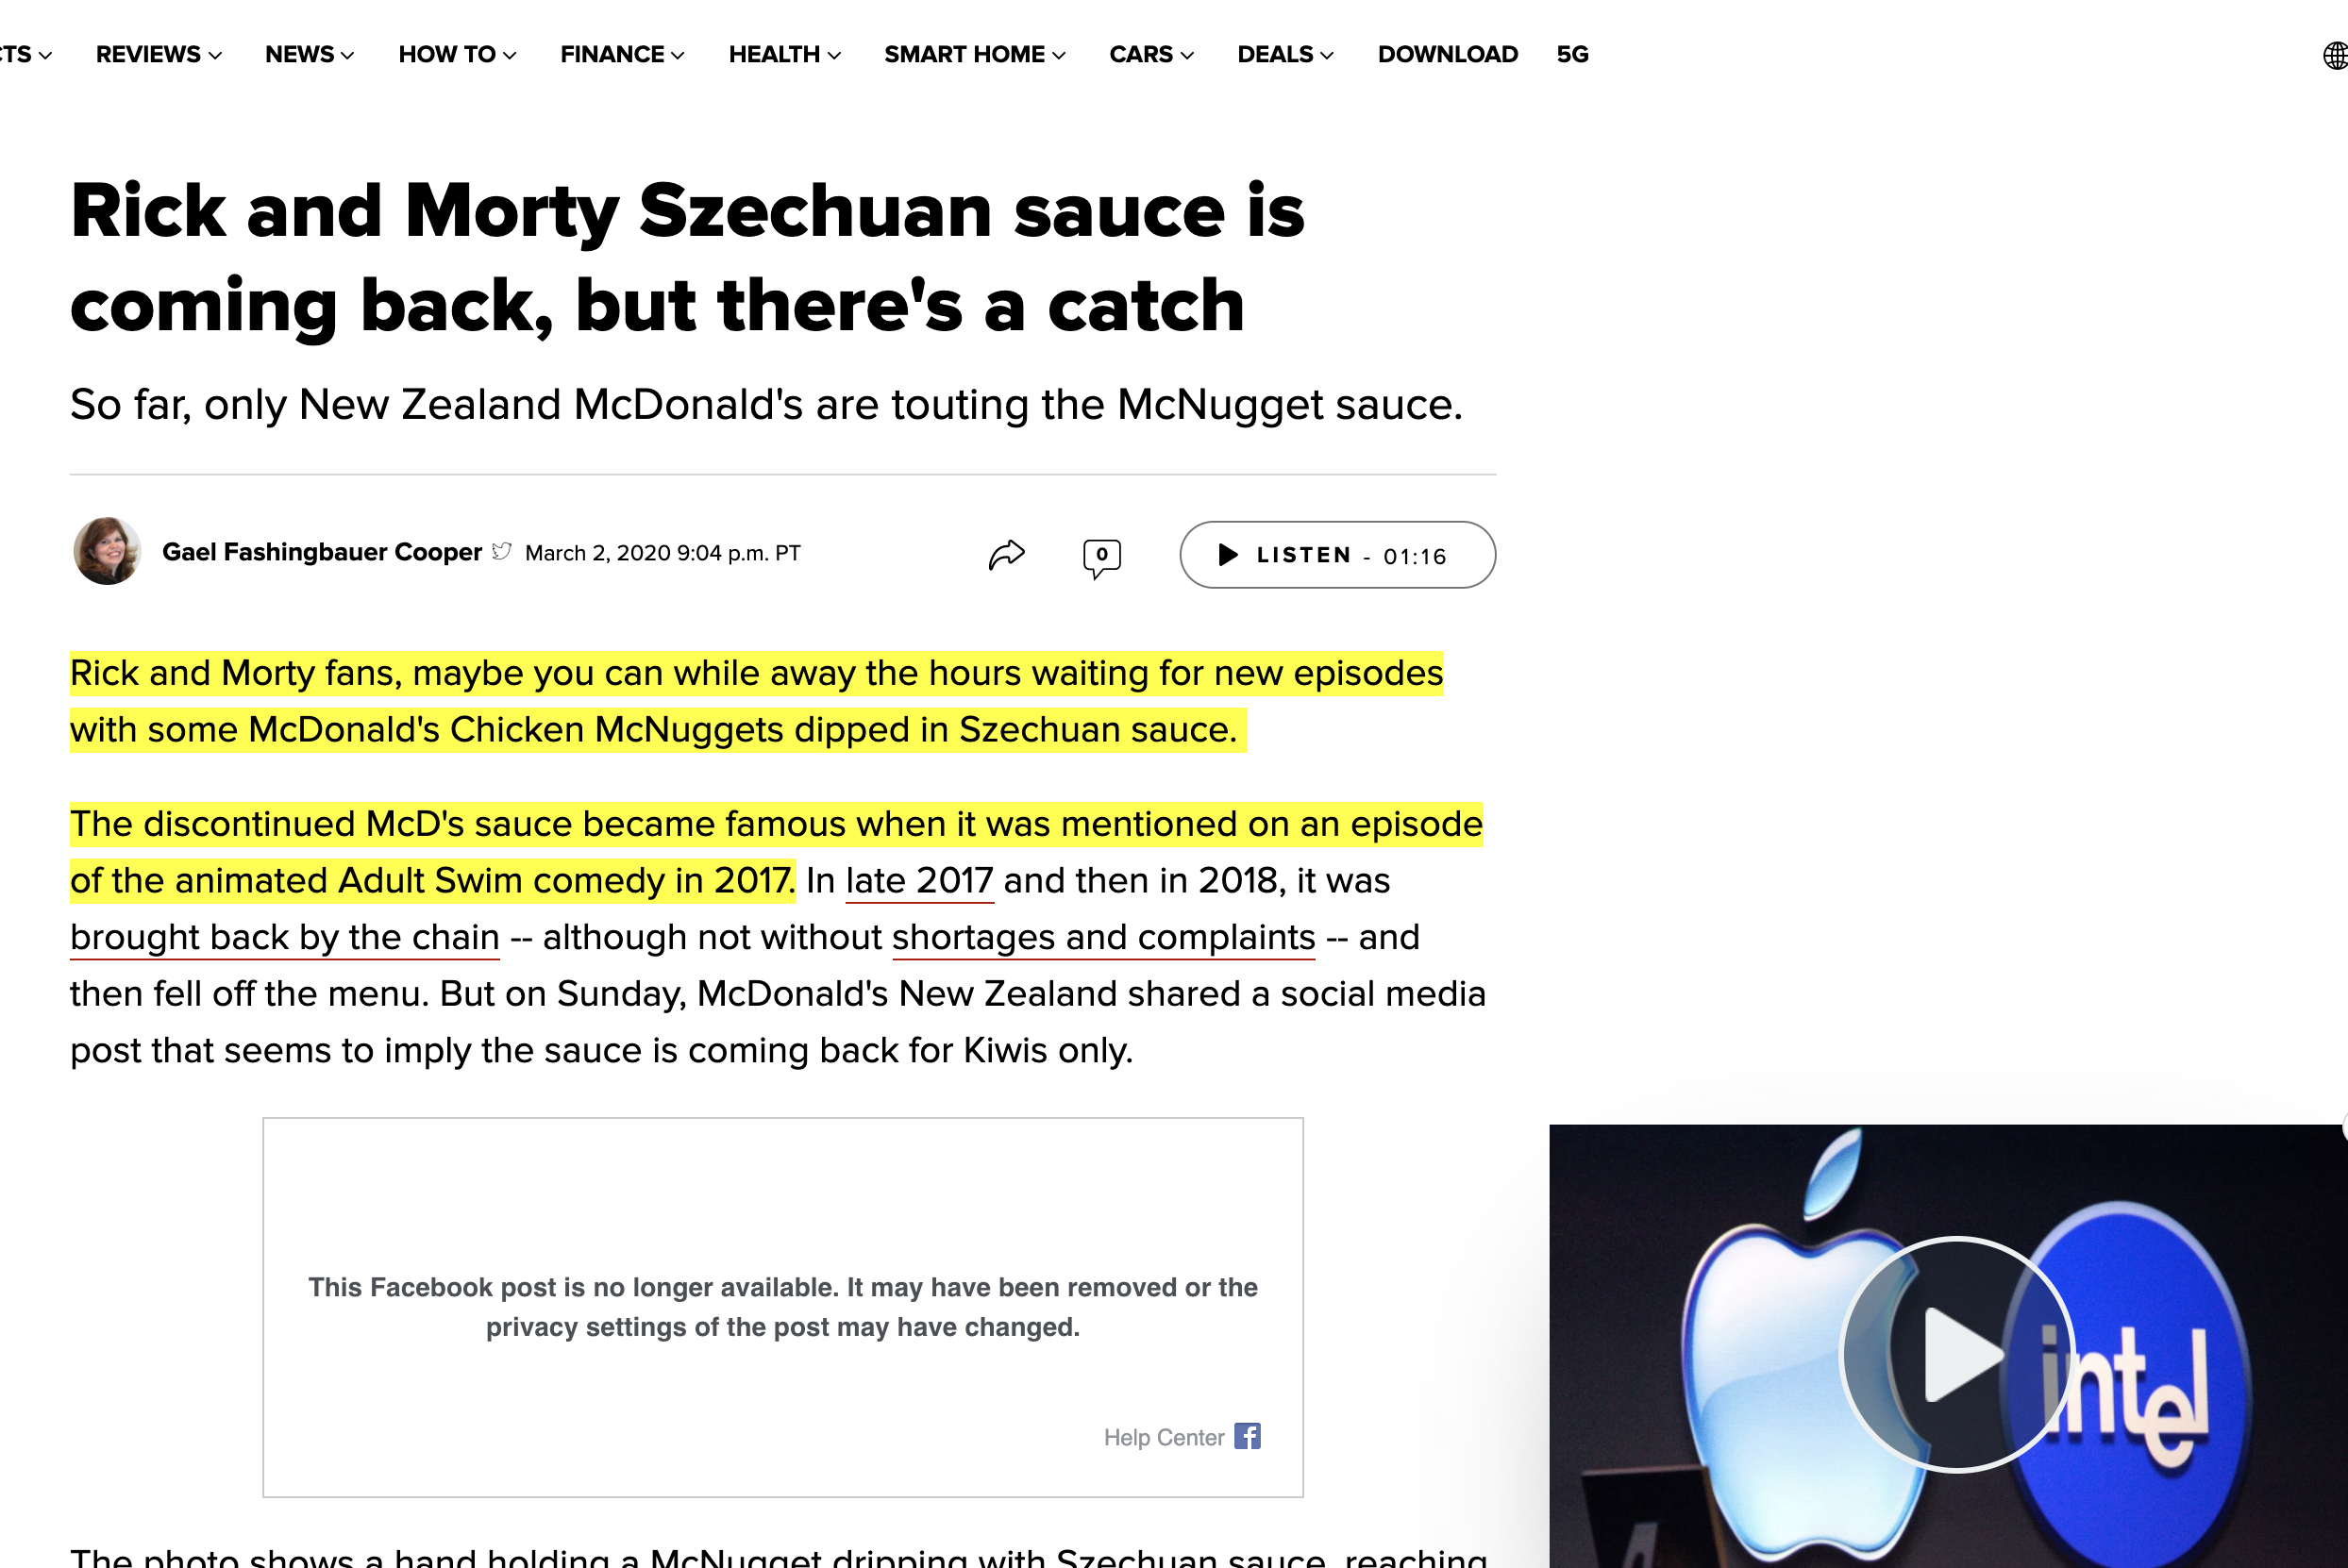 Rick and Morty Suace details at McDonalds highlighted on a CNN page